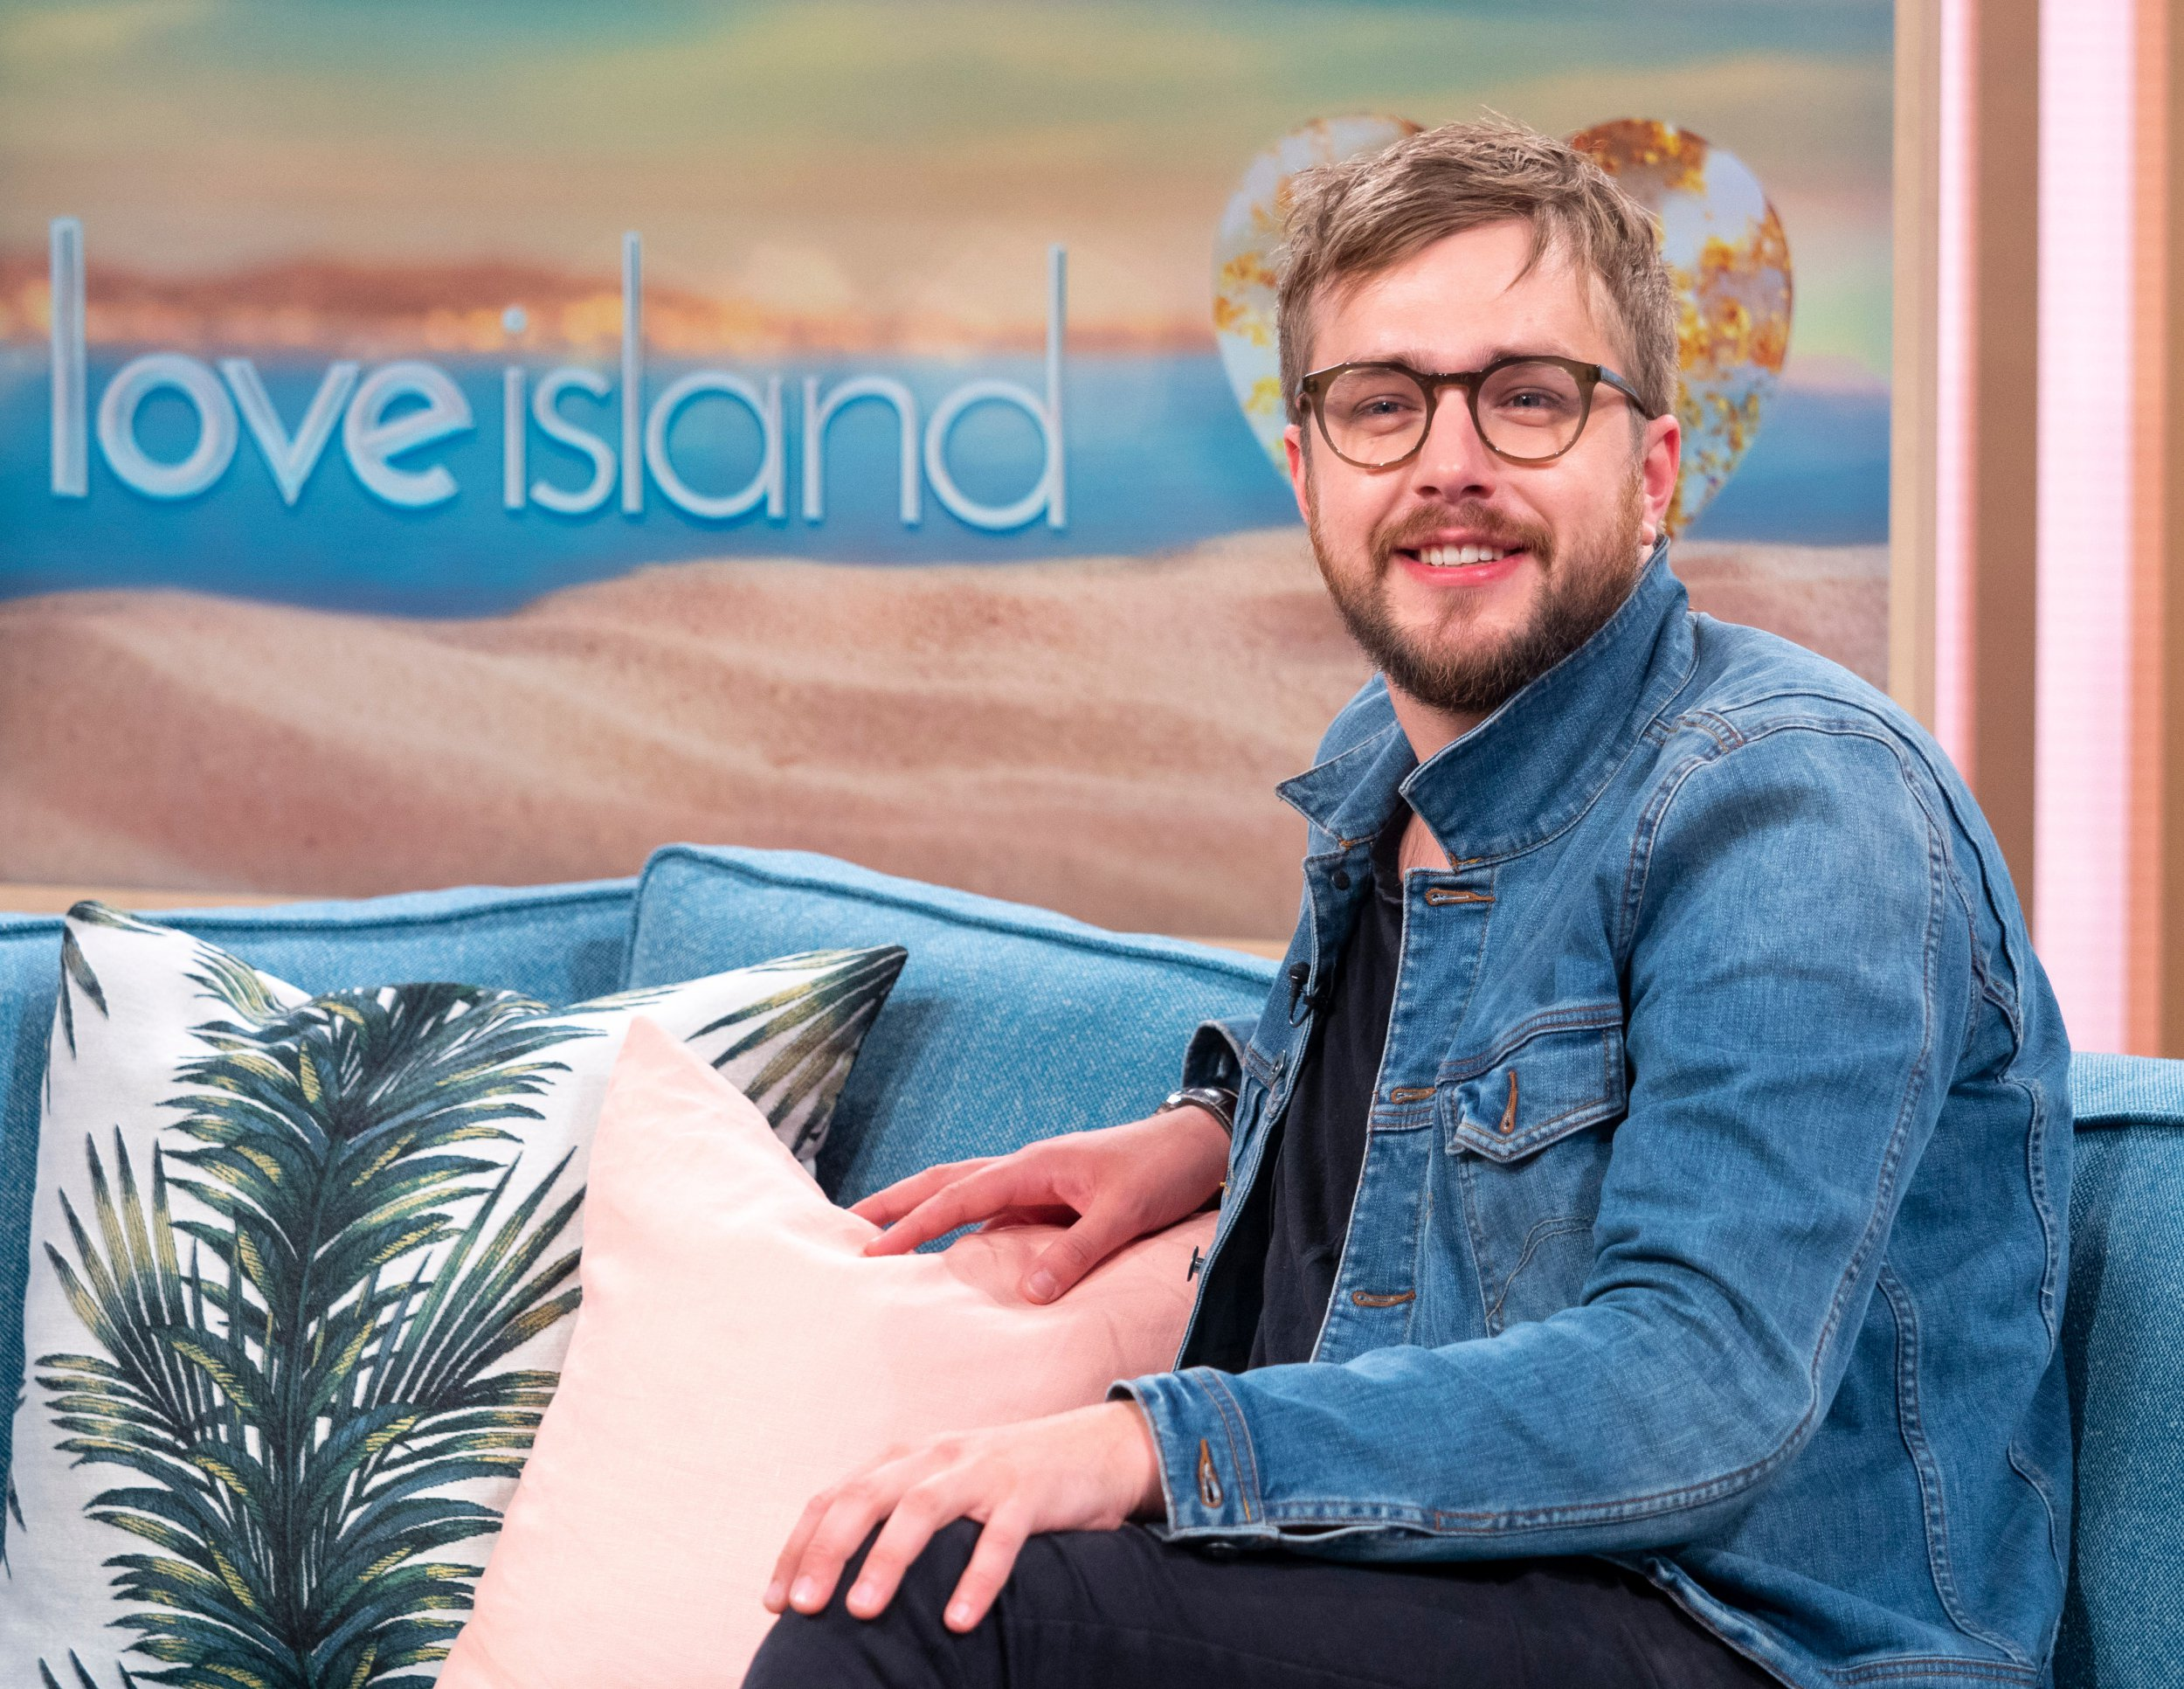 EDITORIAL USE ONLY. NO MERCHANDISING Mandatory Credit: Photo by Ken McKay/ITV/REX/Shutterstock (9697515as) Iain Stirling 'This Morning' TV show, London, UK - 31 May 2018 THE VOICE OF LOVE ISLAND IAIN STIRLING IS 100% OUR TYPE ON PAPER If grafting, mugging off and being pied means nothing to you, where were you last summer? Love Island was one of the hottest shows on our screens, and it?s back on Monday night. Who better to tell us all about the new series than the ?voice? of the show, narrator and comedian Iain Stirling. He?s here with everything you need to know, and what to expect this year. He?ll also be talking about his new book, ?Not Ready To Adult Yet?, his tour ?U OK Hun? X?, being loved up with presenter Laura Whitmore, and whether or not he?ll be invited to Caroline Flack?s wedding.